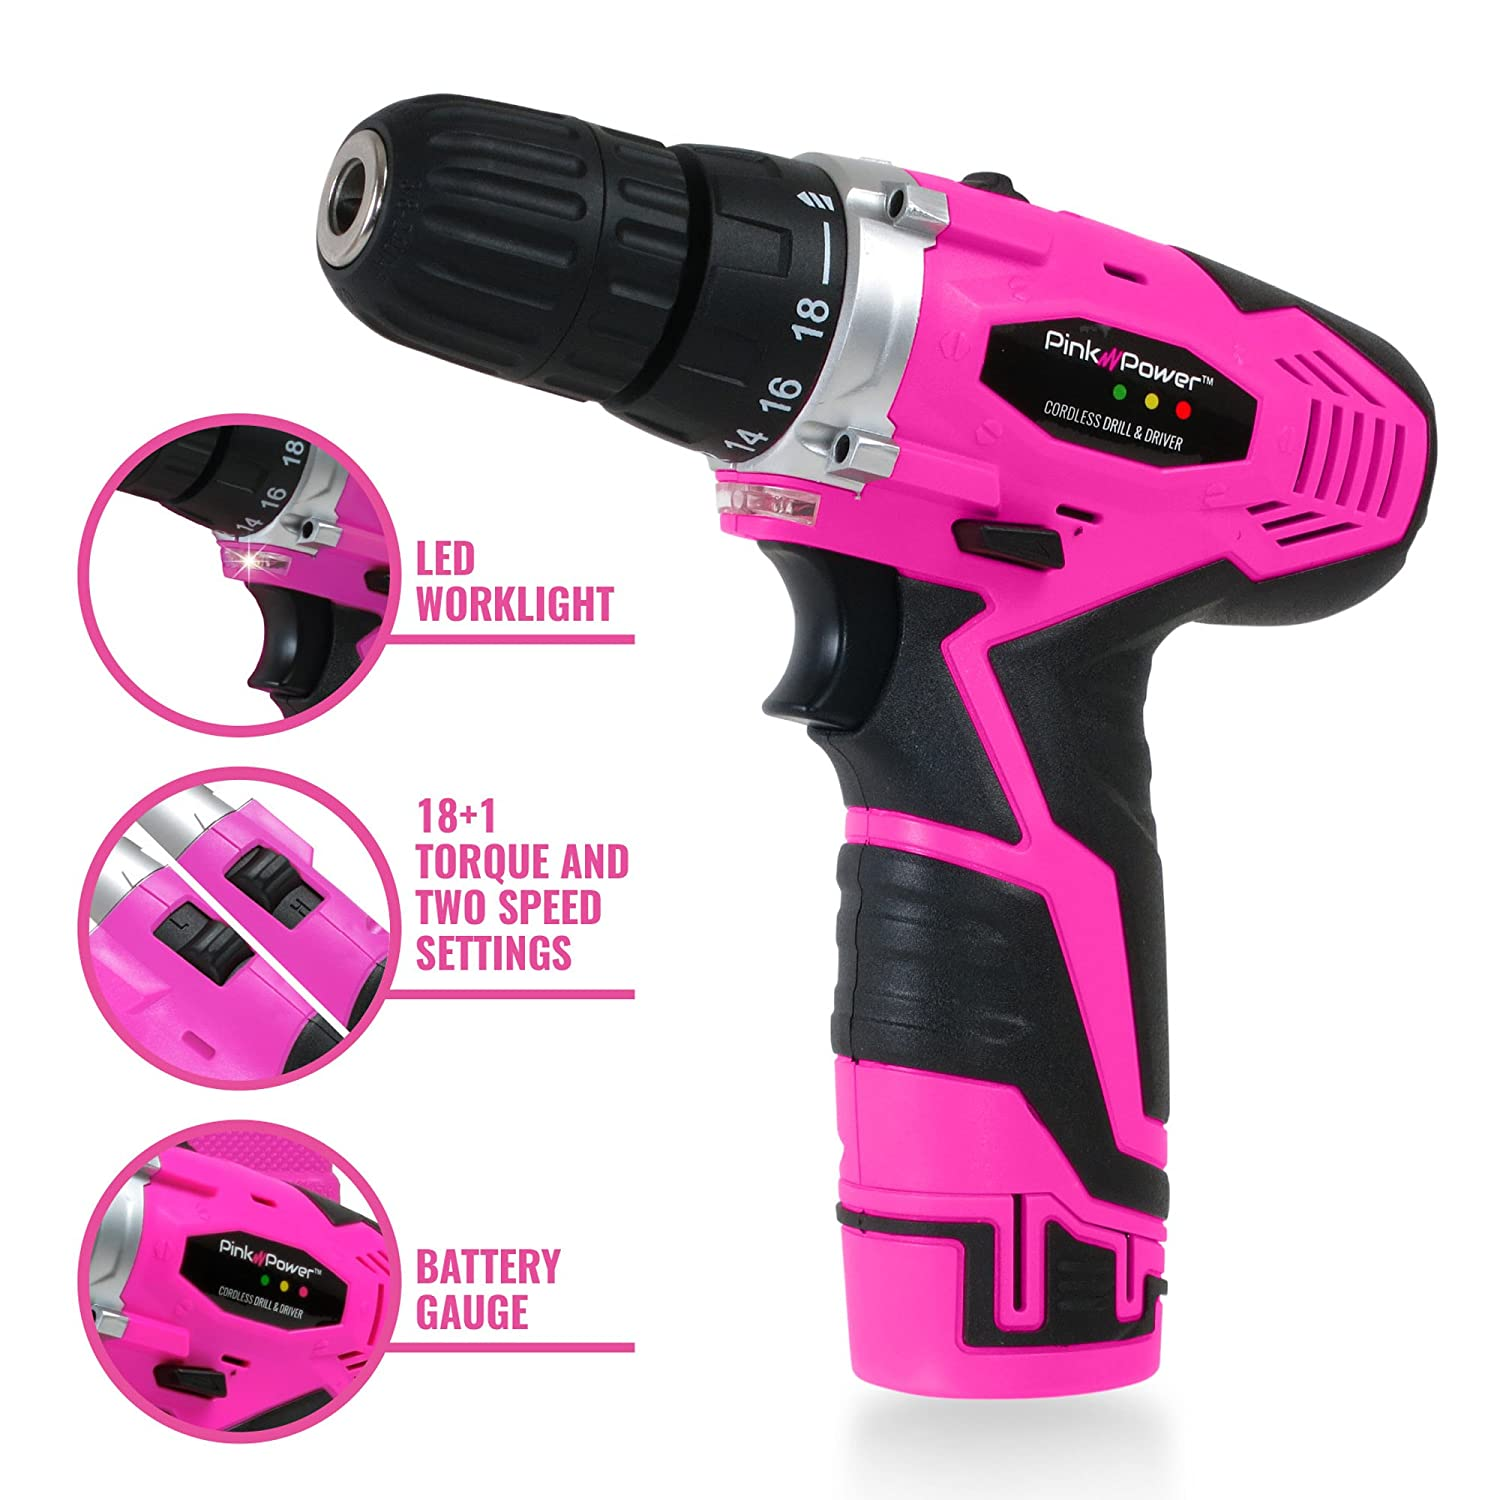 8a352afb4b24b7 Amazon.com: Pink Power PP121LI 12V Cordless Drill & Driver Tool Kit for  Women- Tool Case, Lithium Ion Electric Drill, Drill Set, Battery & Charger:  Home ...